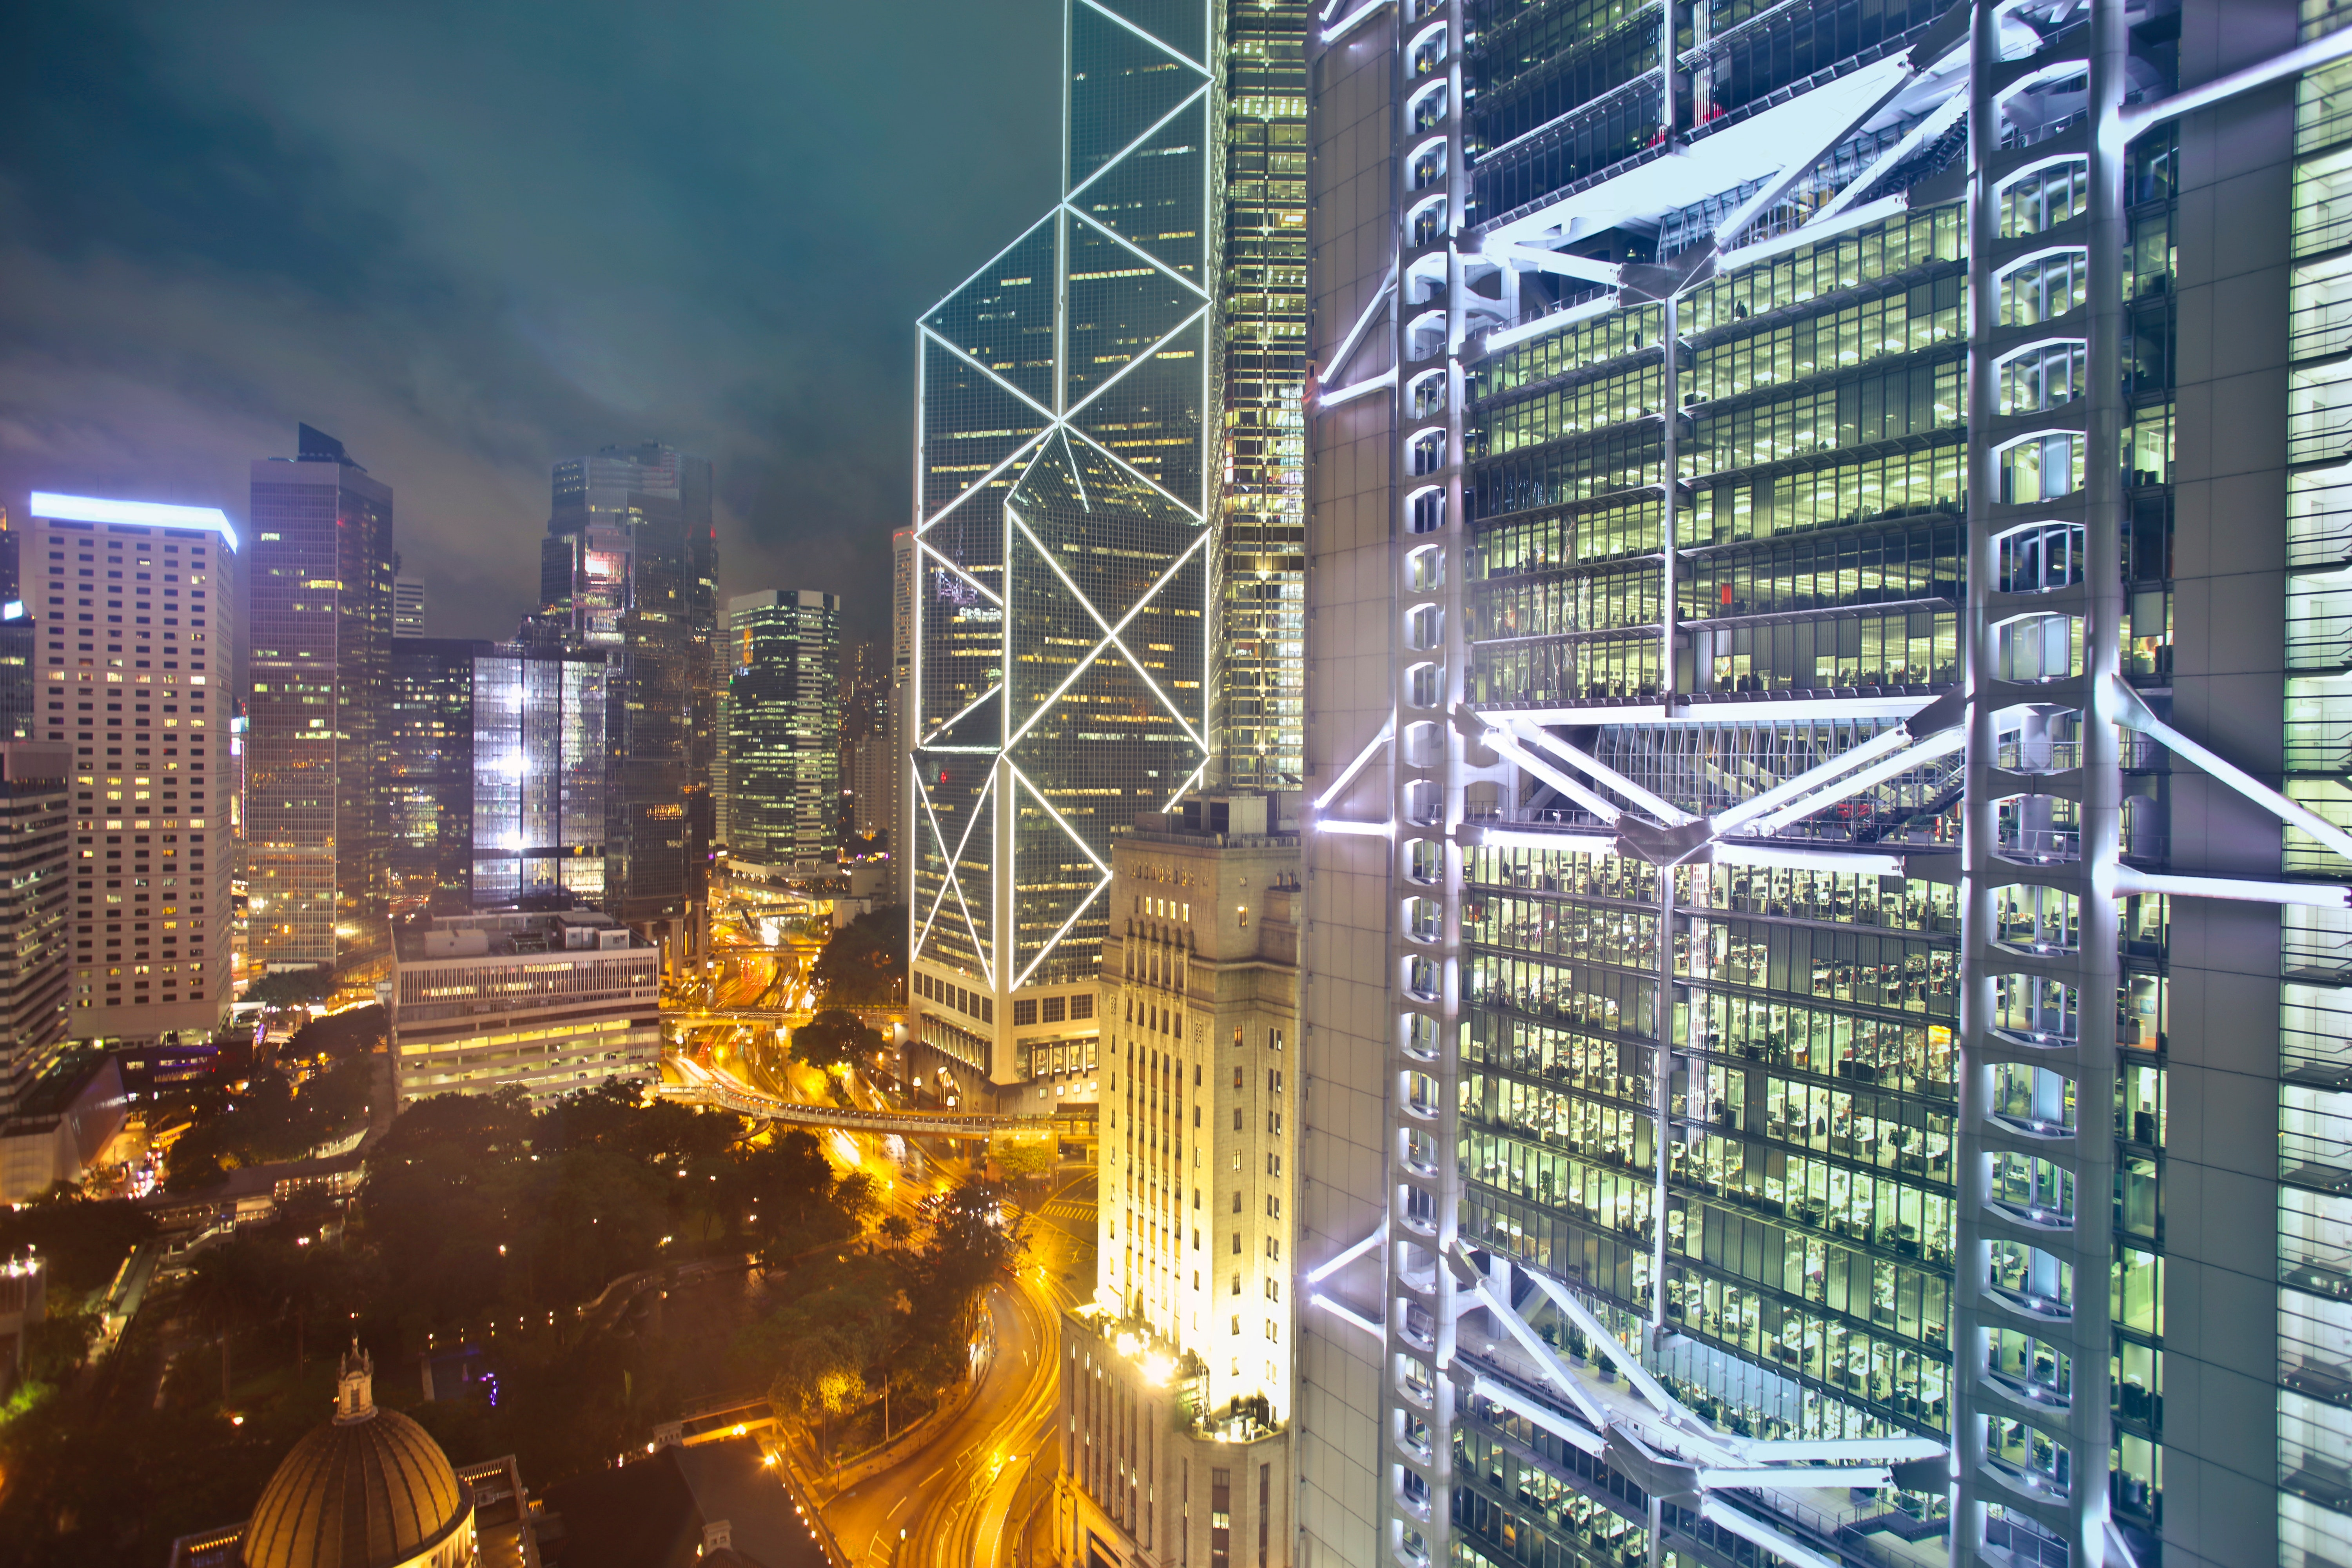 High Rise Buildings during Night Time, Architecture, Night, Urban, Time-lapse, HQ Photo